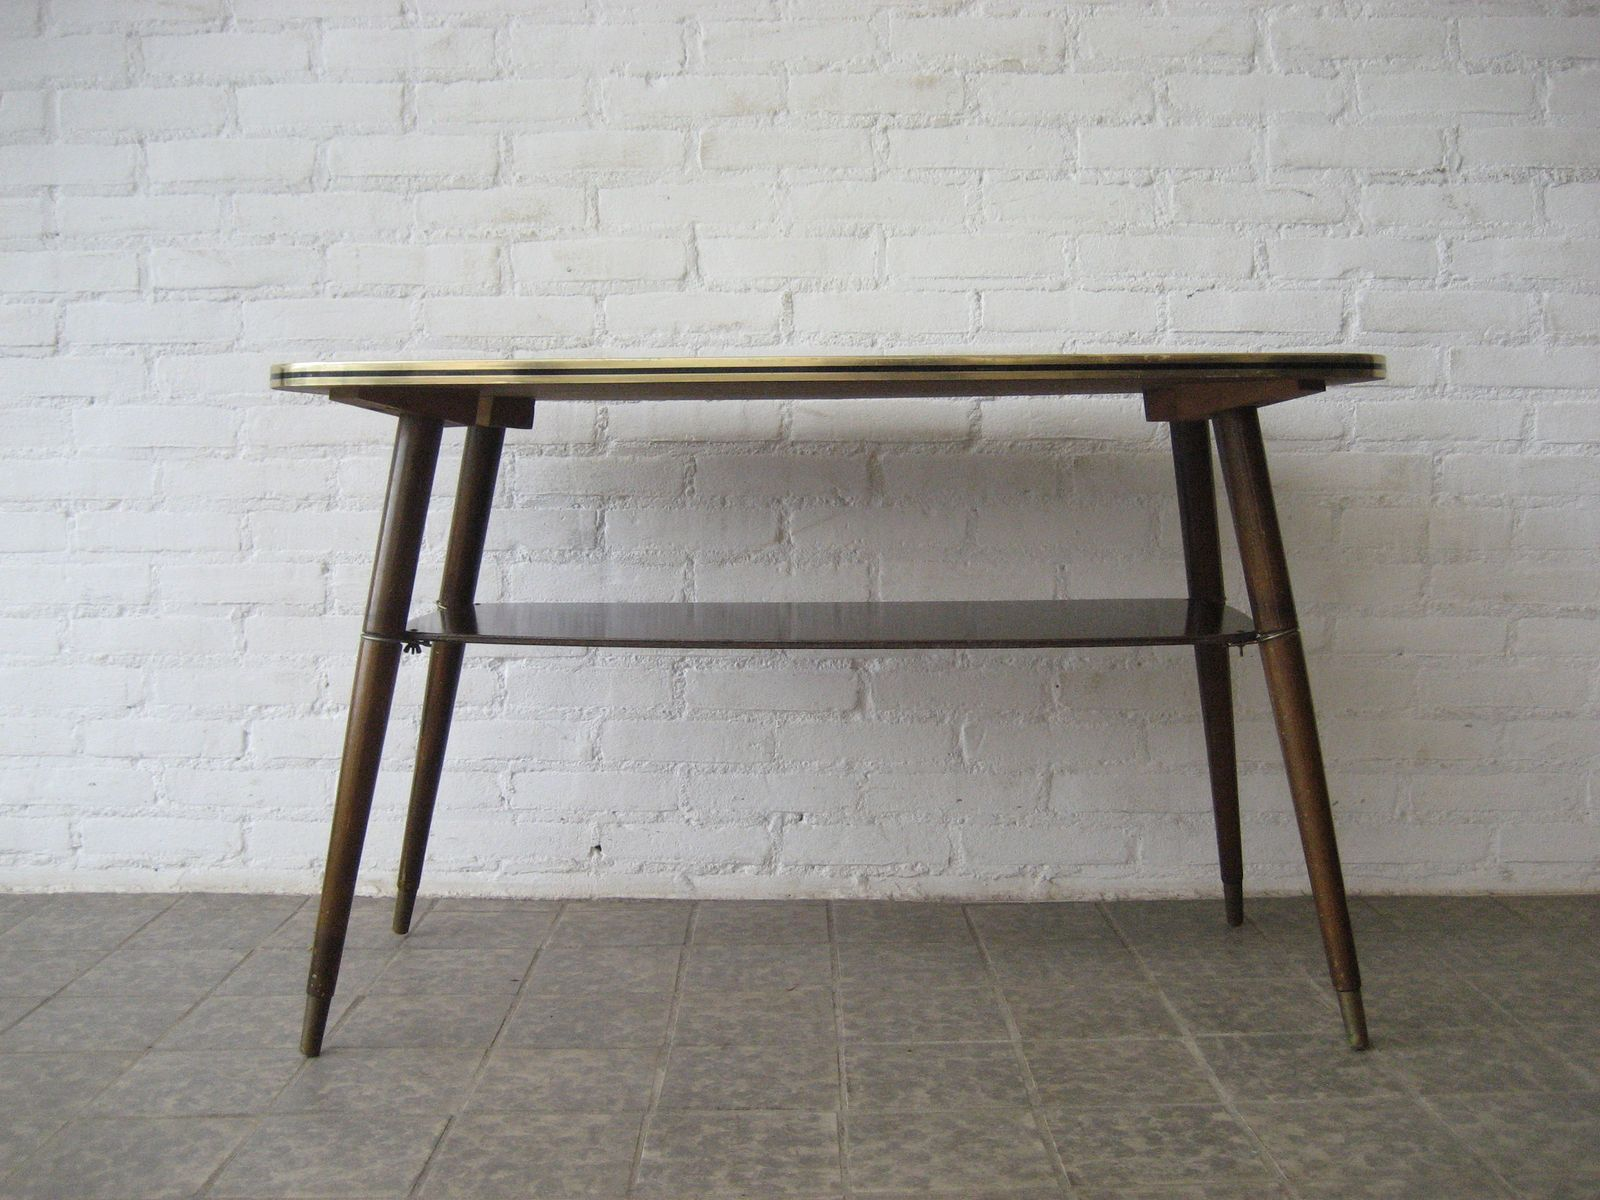 French Vintage Coffee Table With Glass Top 1950s For Sale At Pamono